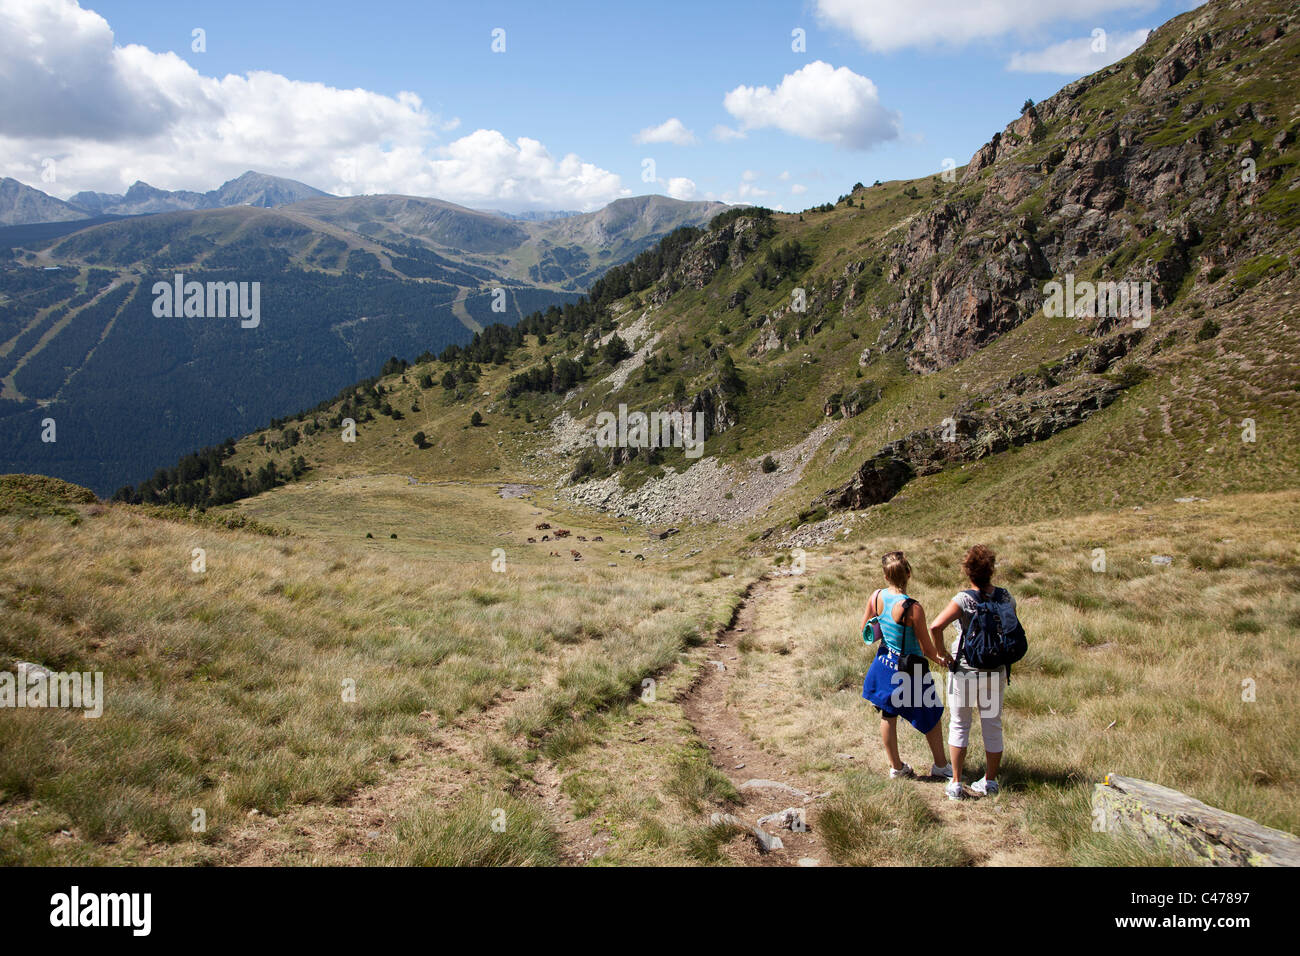 Two people admiring view in mountains on the Asses de les Salamandres walk Vall d'Incles Andorra - Stock Image